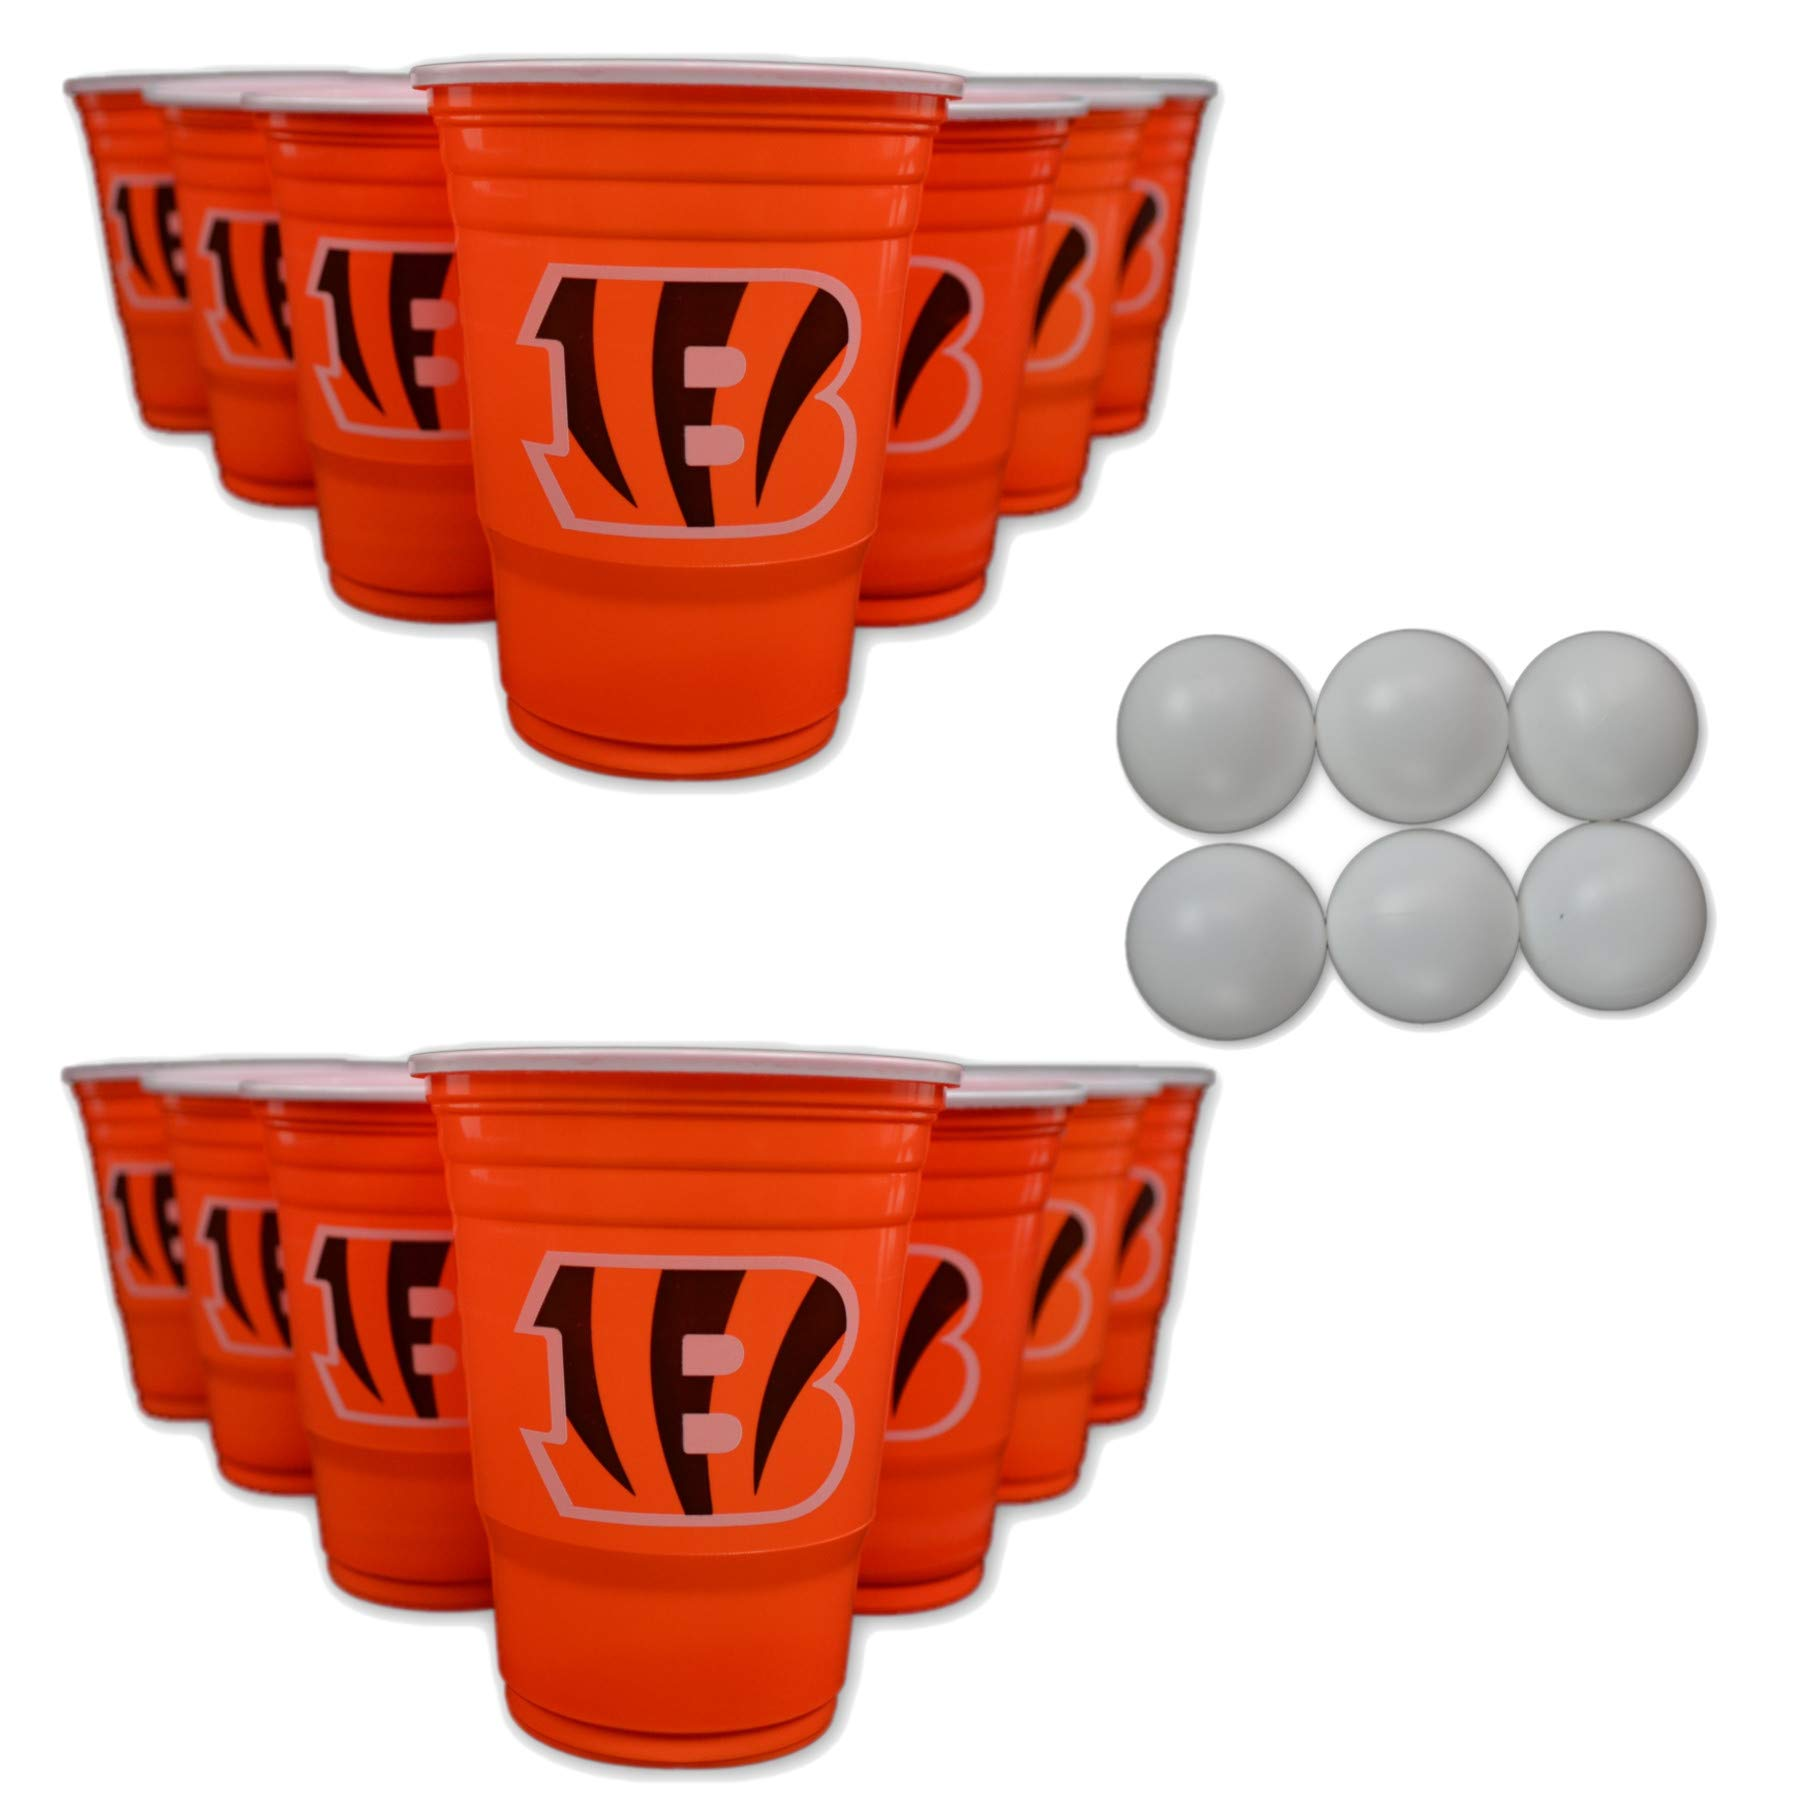 NFL Fan Shop Beer Pong Set. Rep Your Favorite Team with the Classic Game of Beer Pong at home or at the Tailgate Party - Comes with 22 Cups and 6 Ping Pong Balls (Cincinnati Bengals) by Siskiyou/Sport Mania